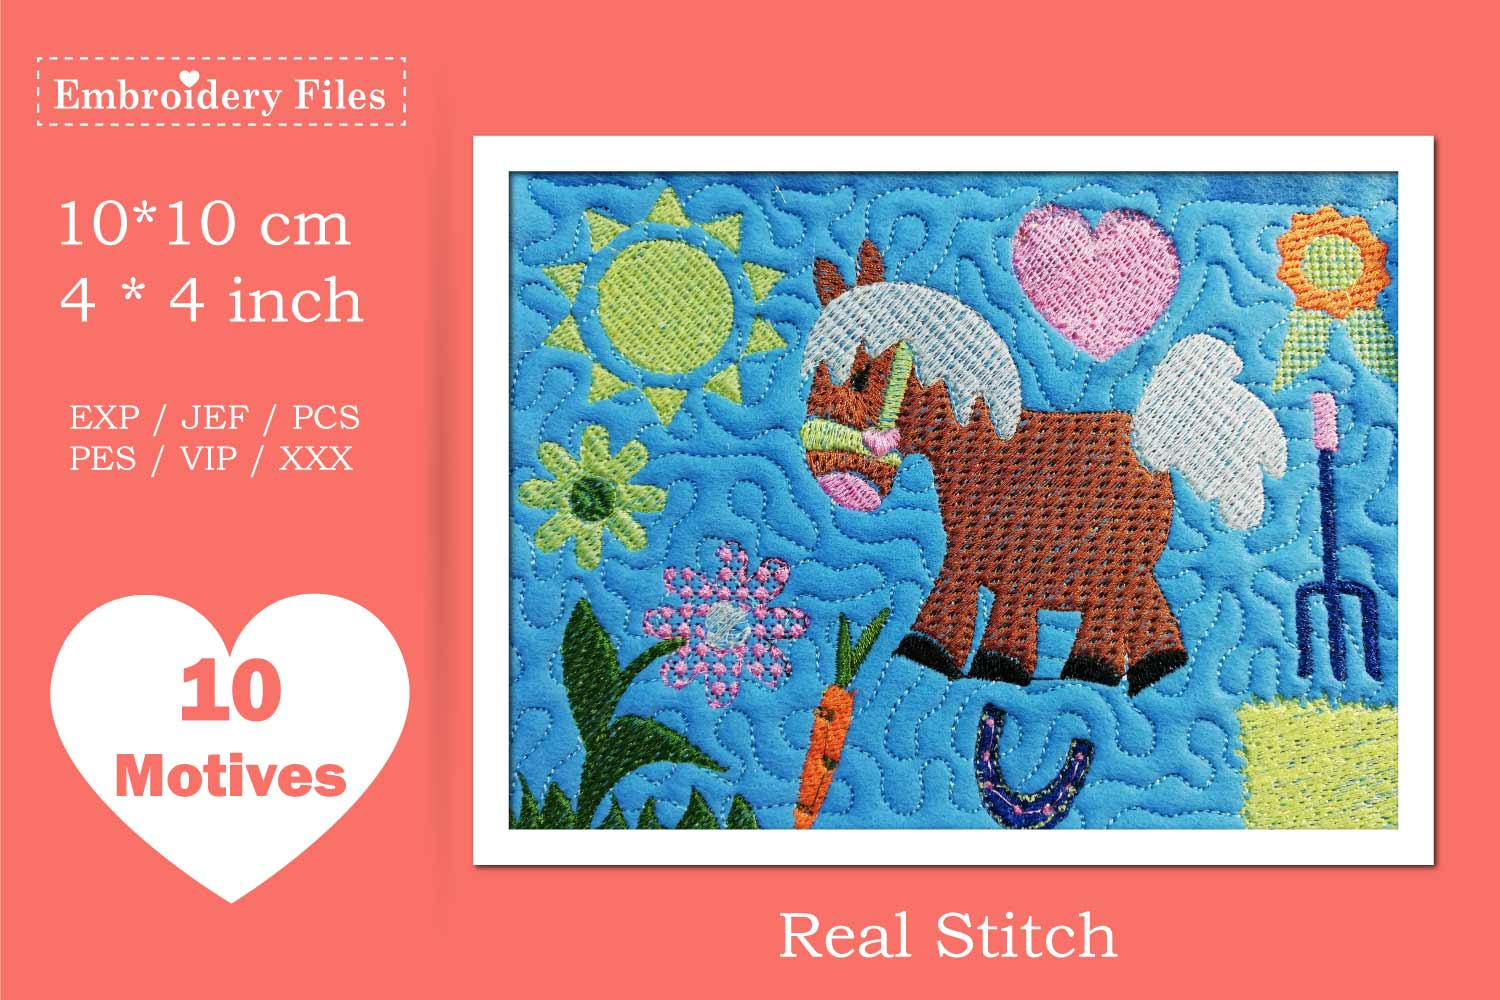 My lovely Pony - Embroidery Files - 10 Motives example image 3